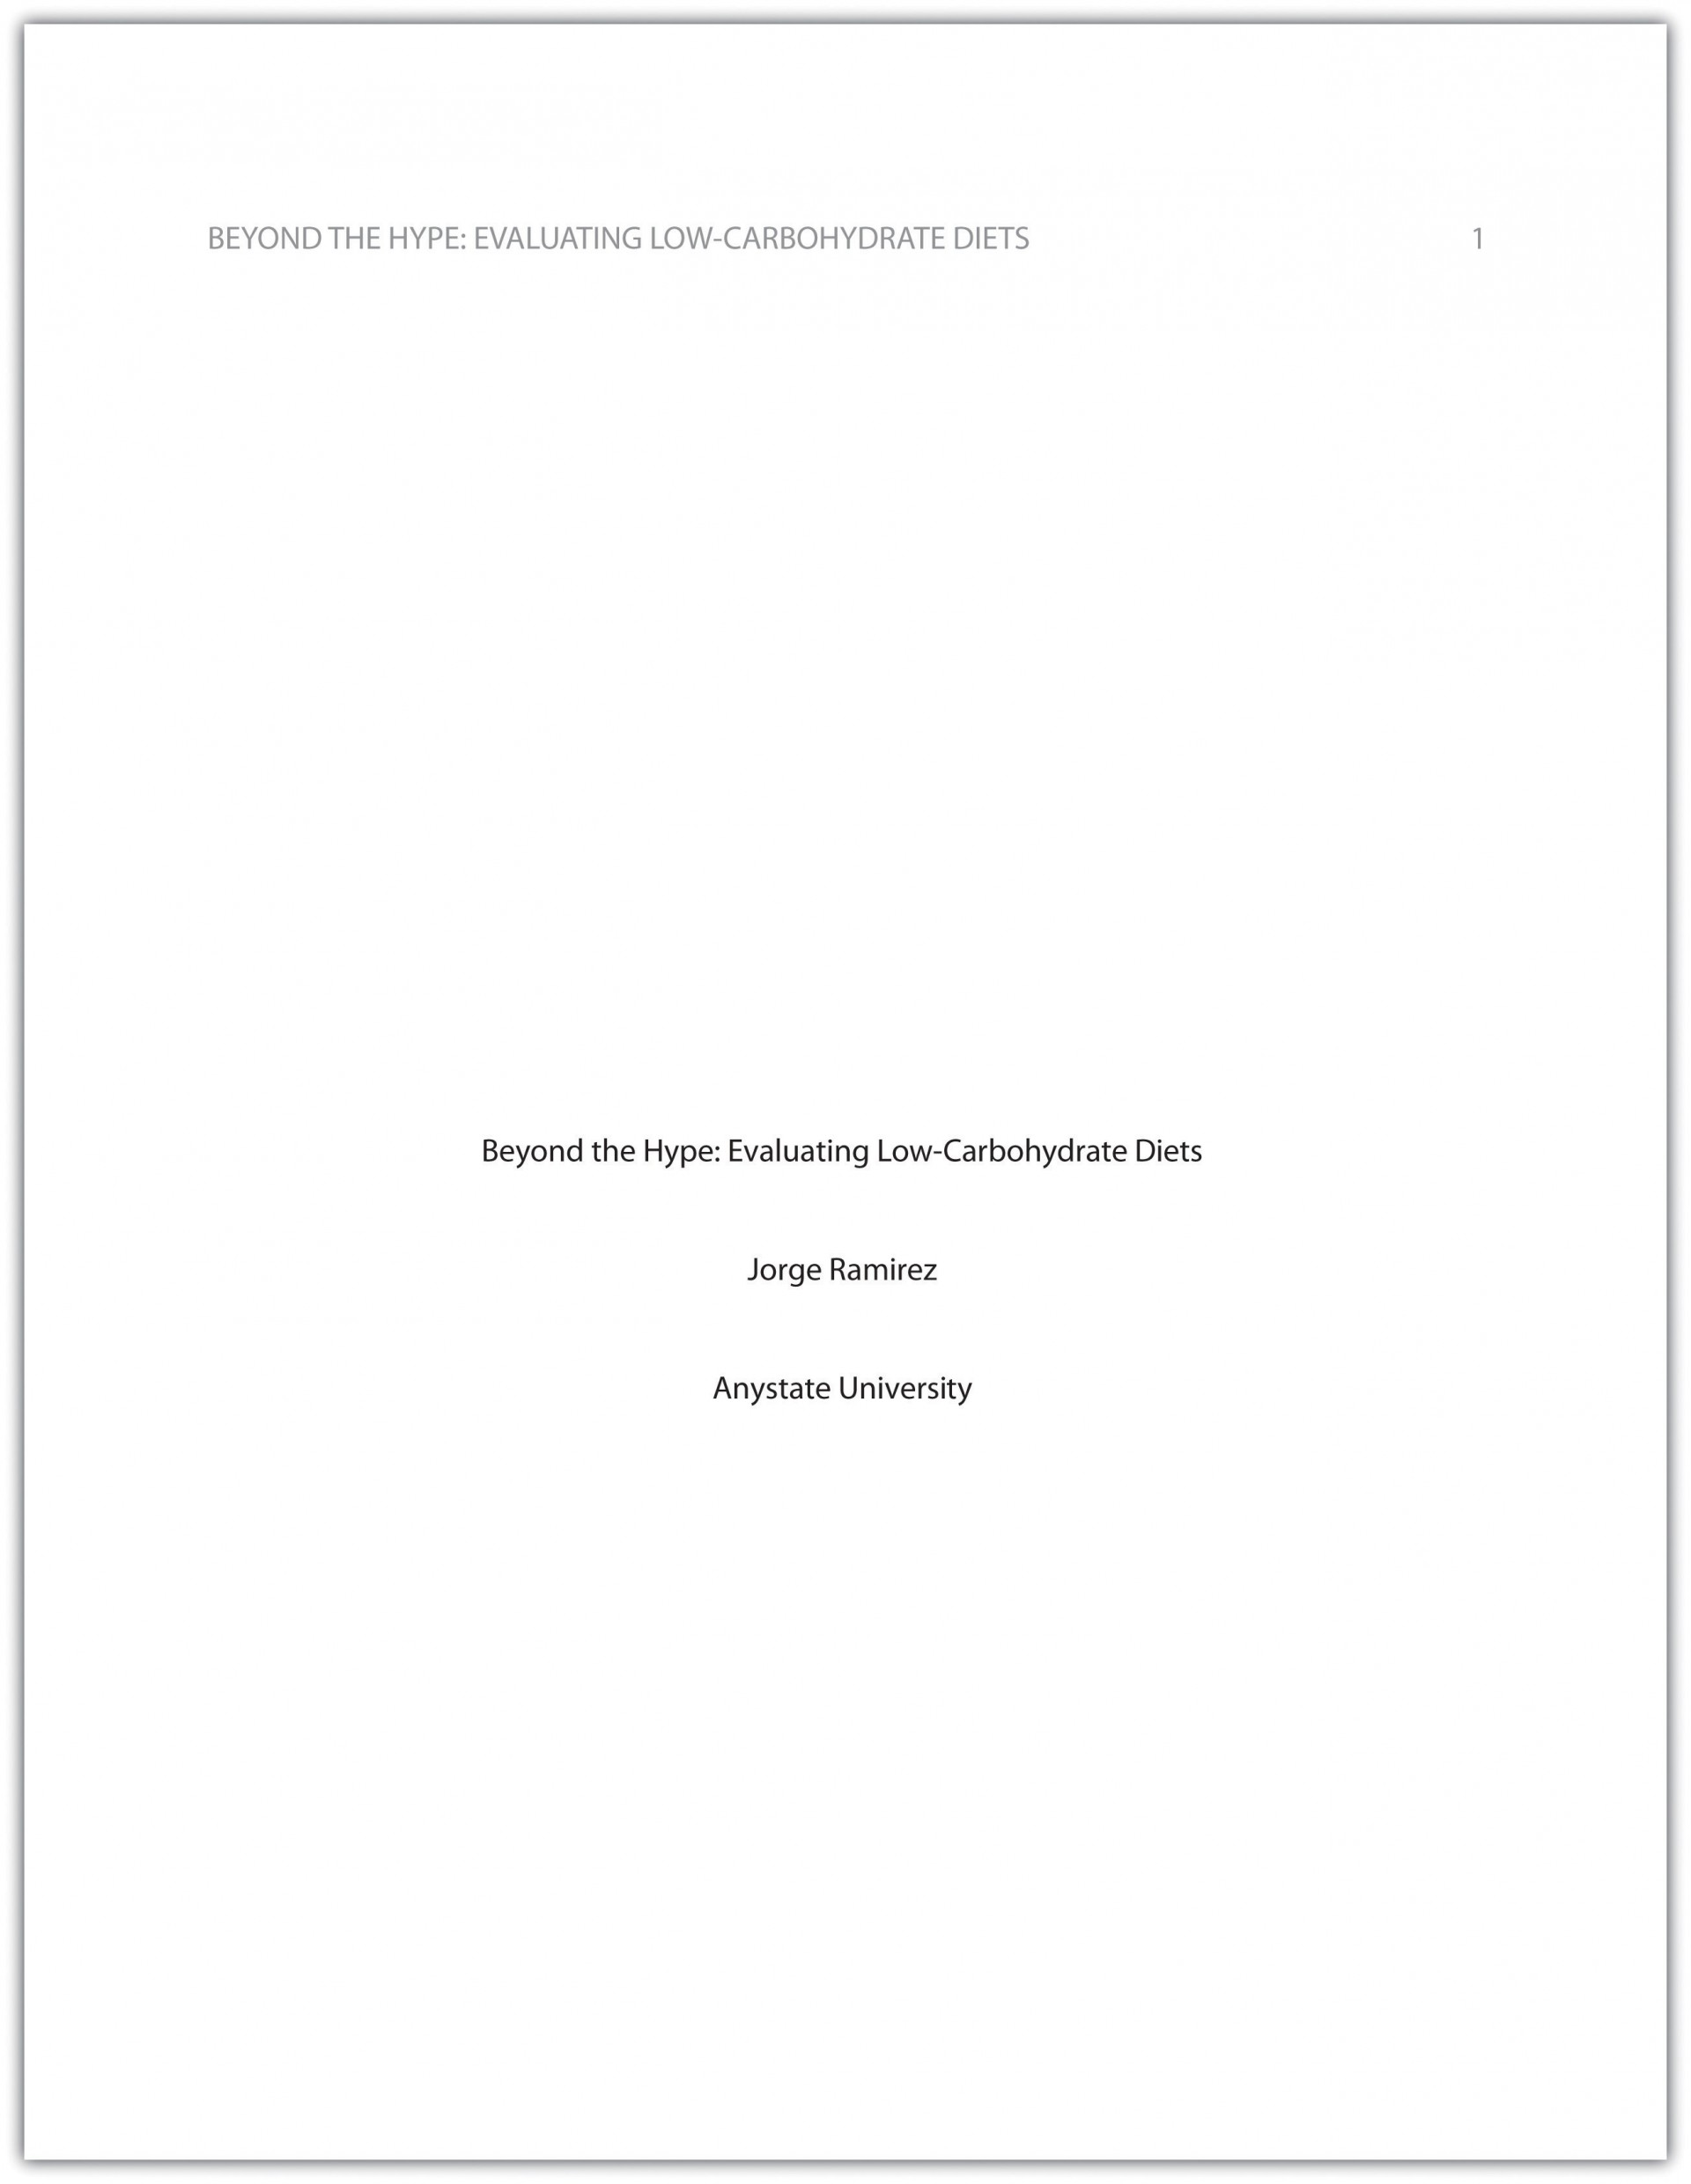 Buy a college essay for